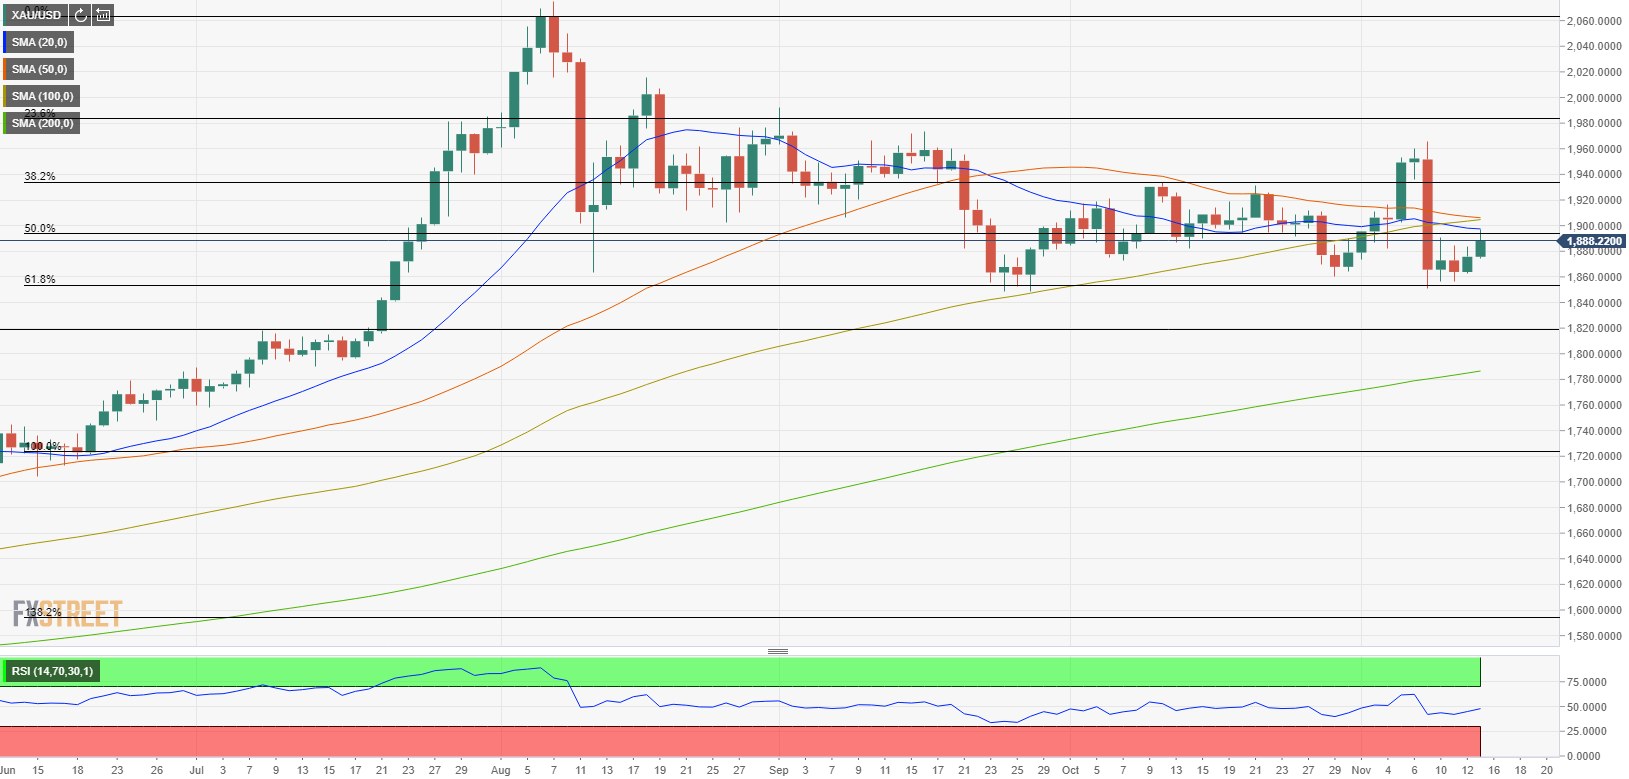 XAU/USD could extend rebound with daily close above $1,900